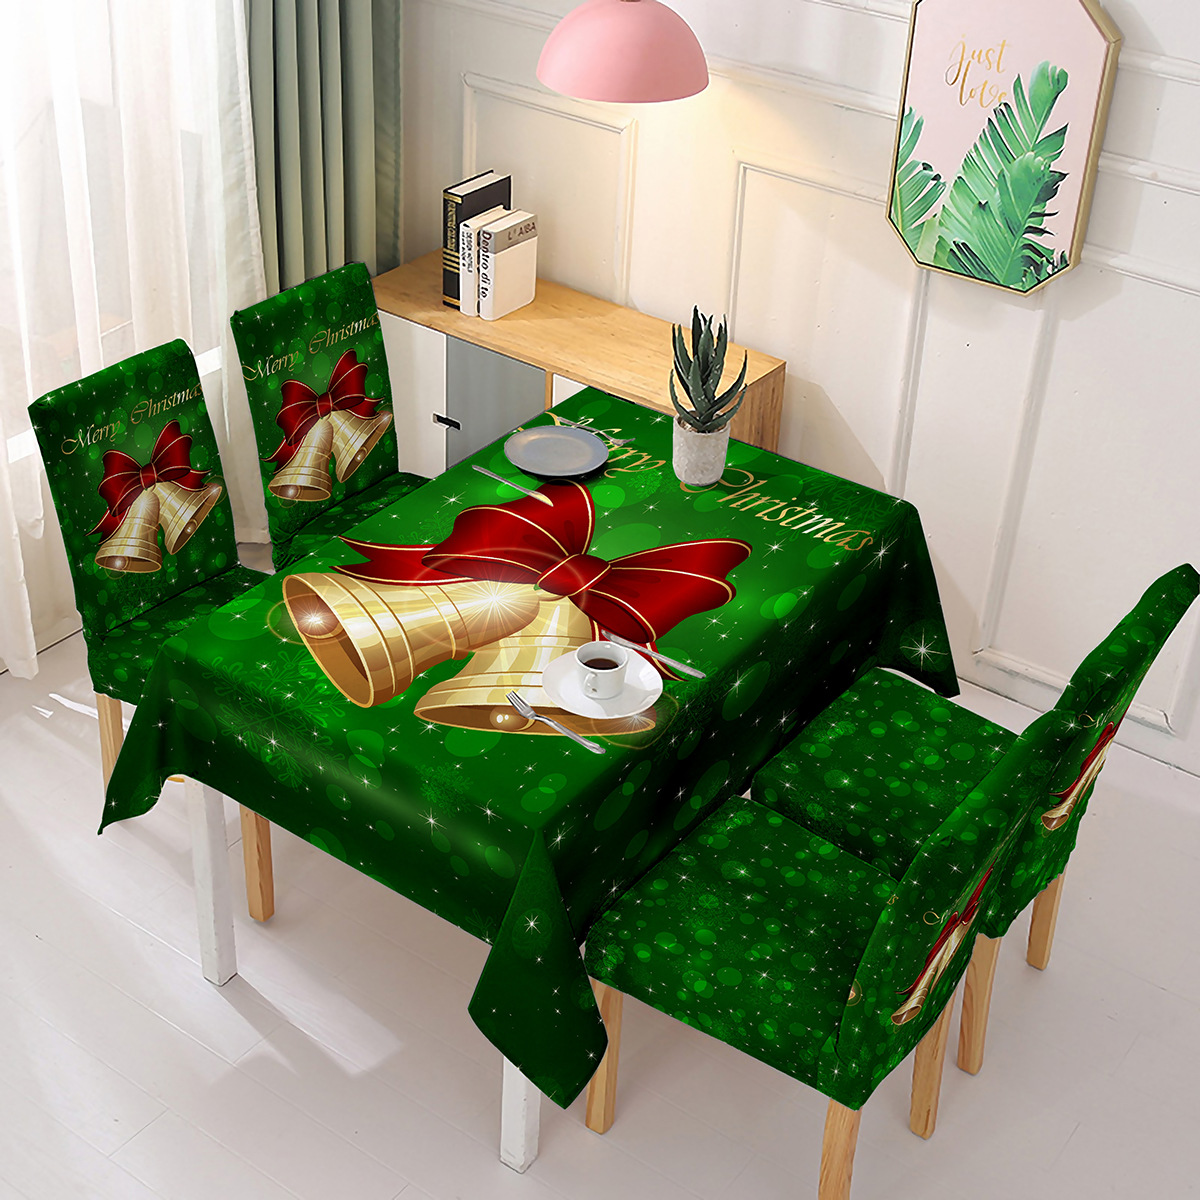 wholesale Christmas Chair Back Covers Kitchen Dinner Table Party Decoration